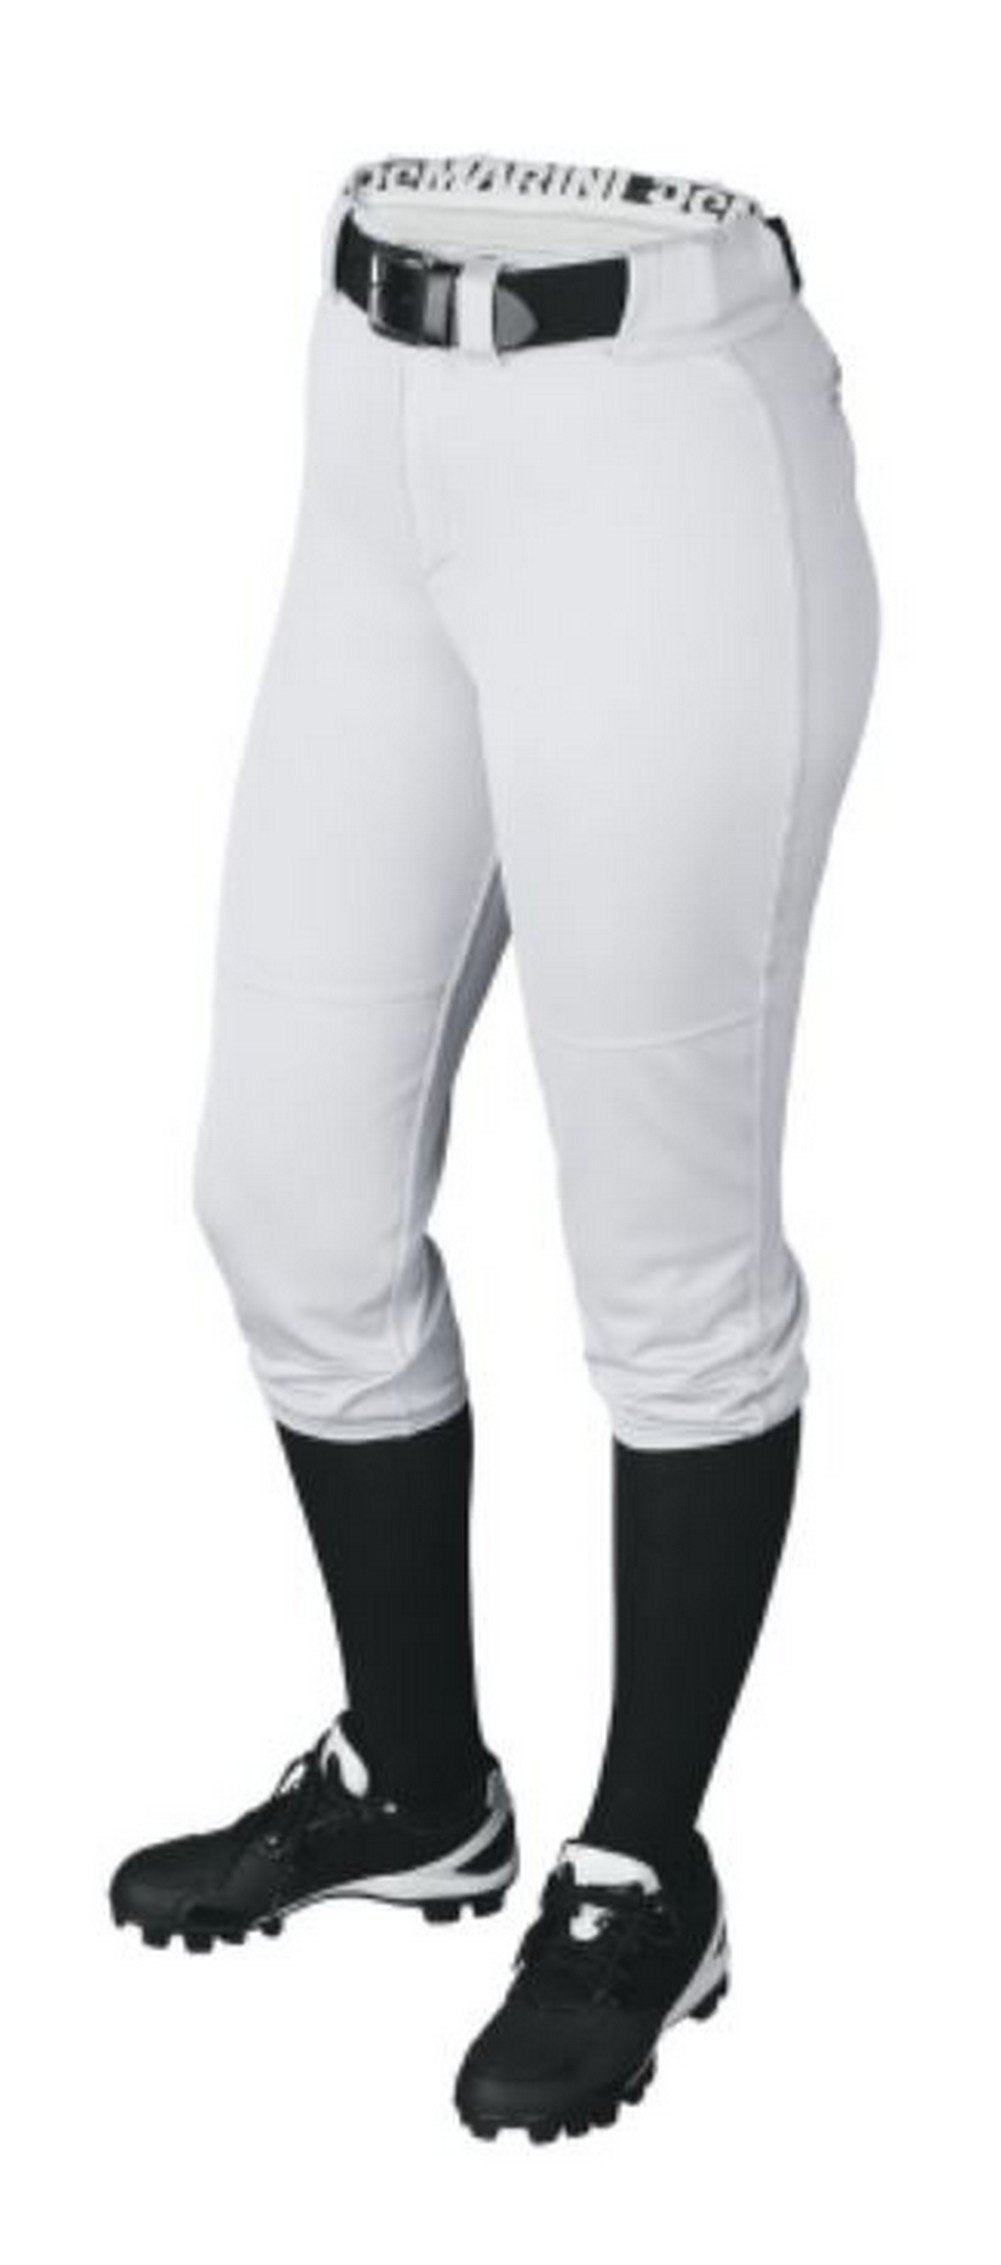 DeMarini Womens Sleek Pull Up Pant, Team White, Small by DeMarini (Image #2)